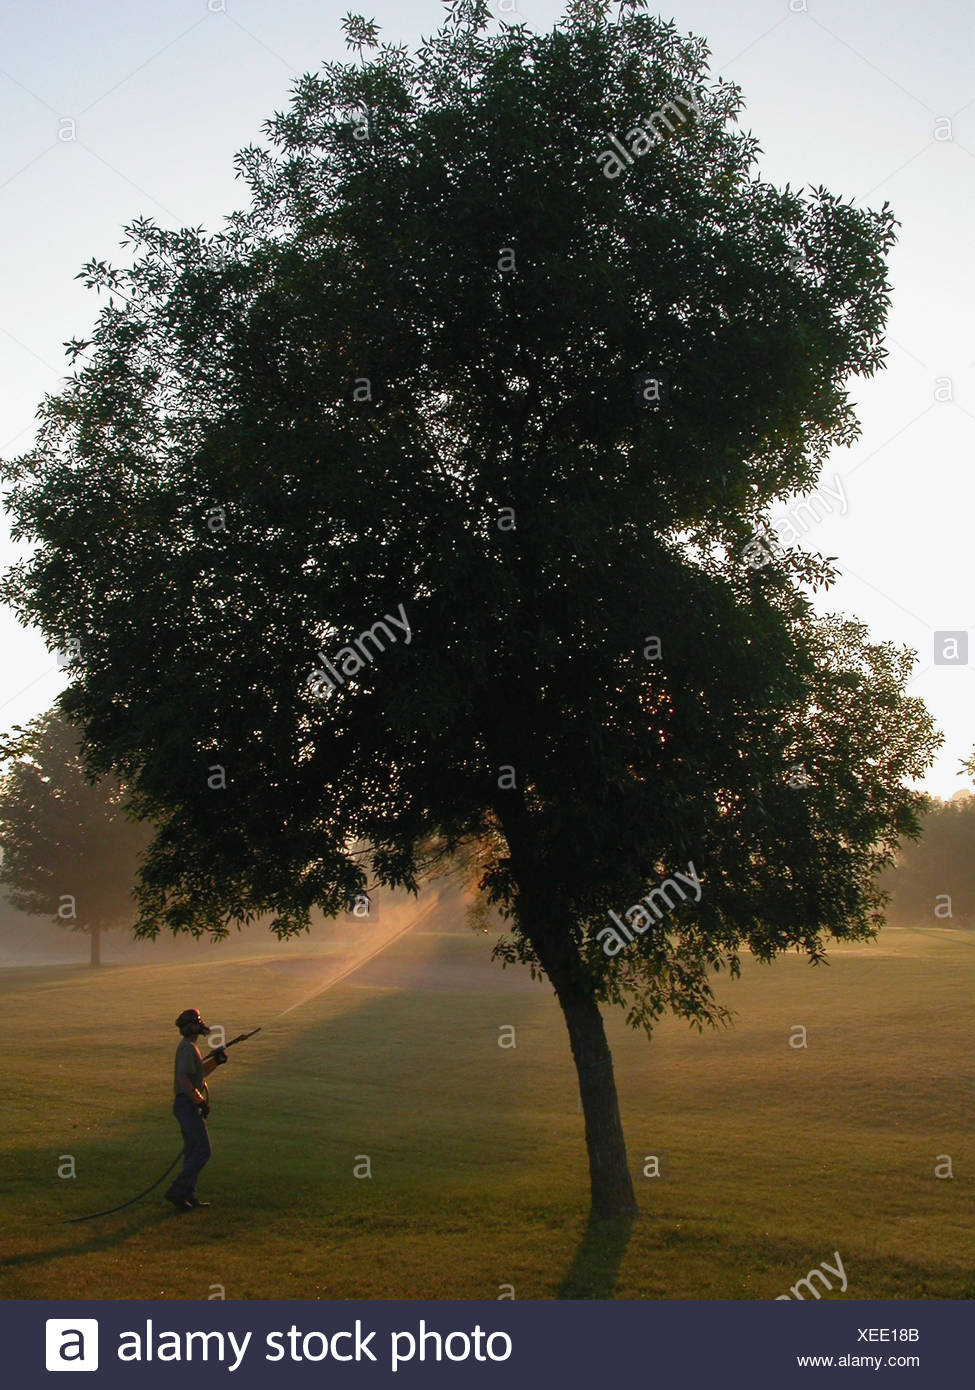 Foliar spray application to ash tree, for control of emerald ash borer - Stock Image